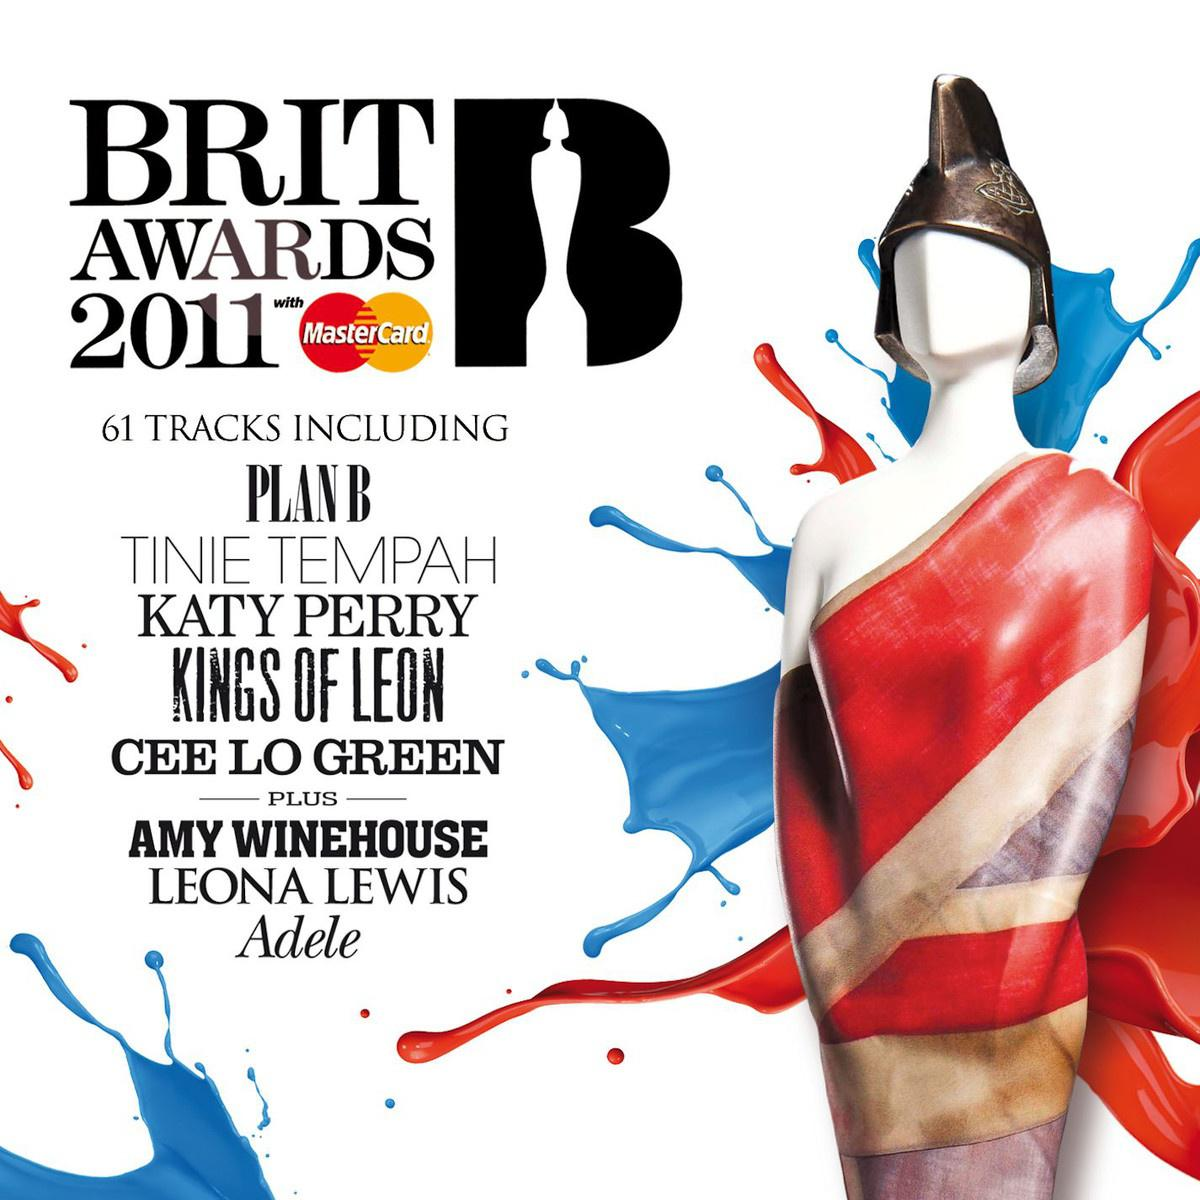 The Brit Awards Album 2011